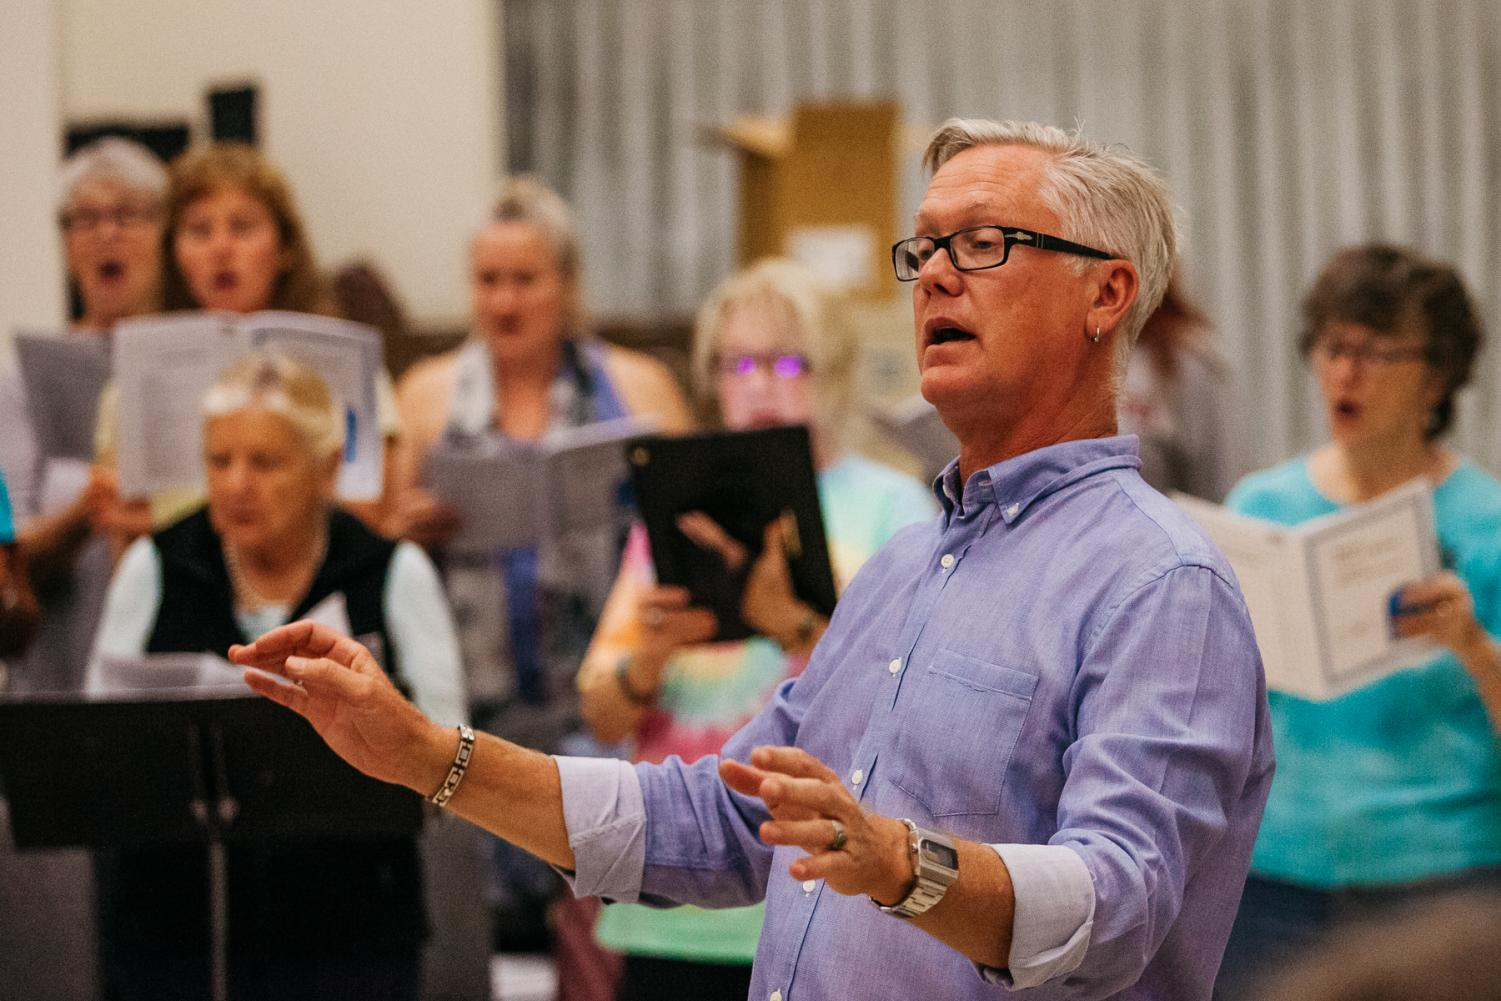 The newly appointed Music Department Chair Nathan Kreitzer directes the City College's Quire of Voyces on Tuesday, Sept. 24, 2019, in the Drama/Music building, Room DM-101 at City College in Santa Barbara, Calif. Kreitzer is the founder and director of City College's Quire of Voyces, and teaches many singing classes on campus.